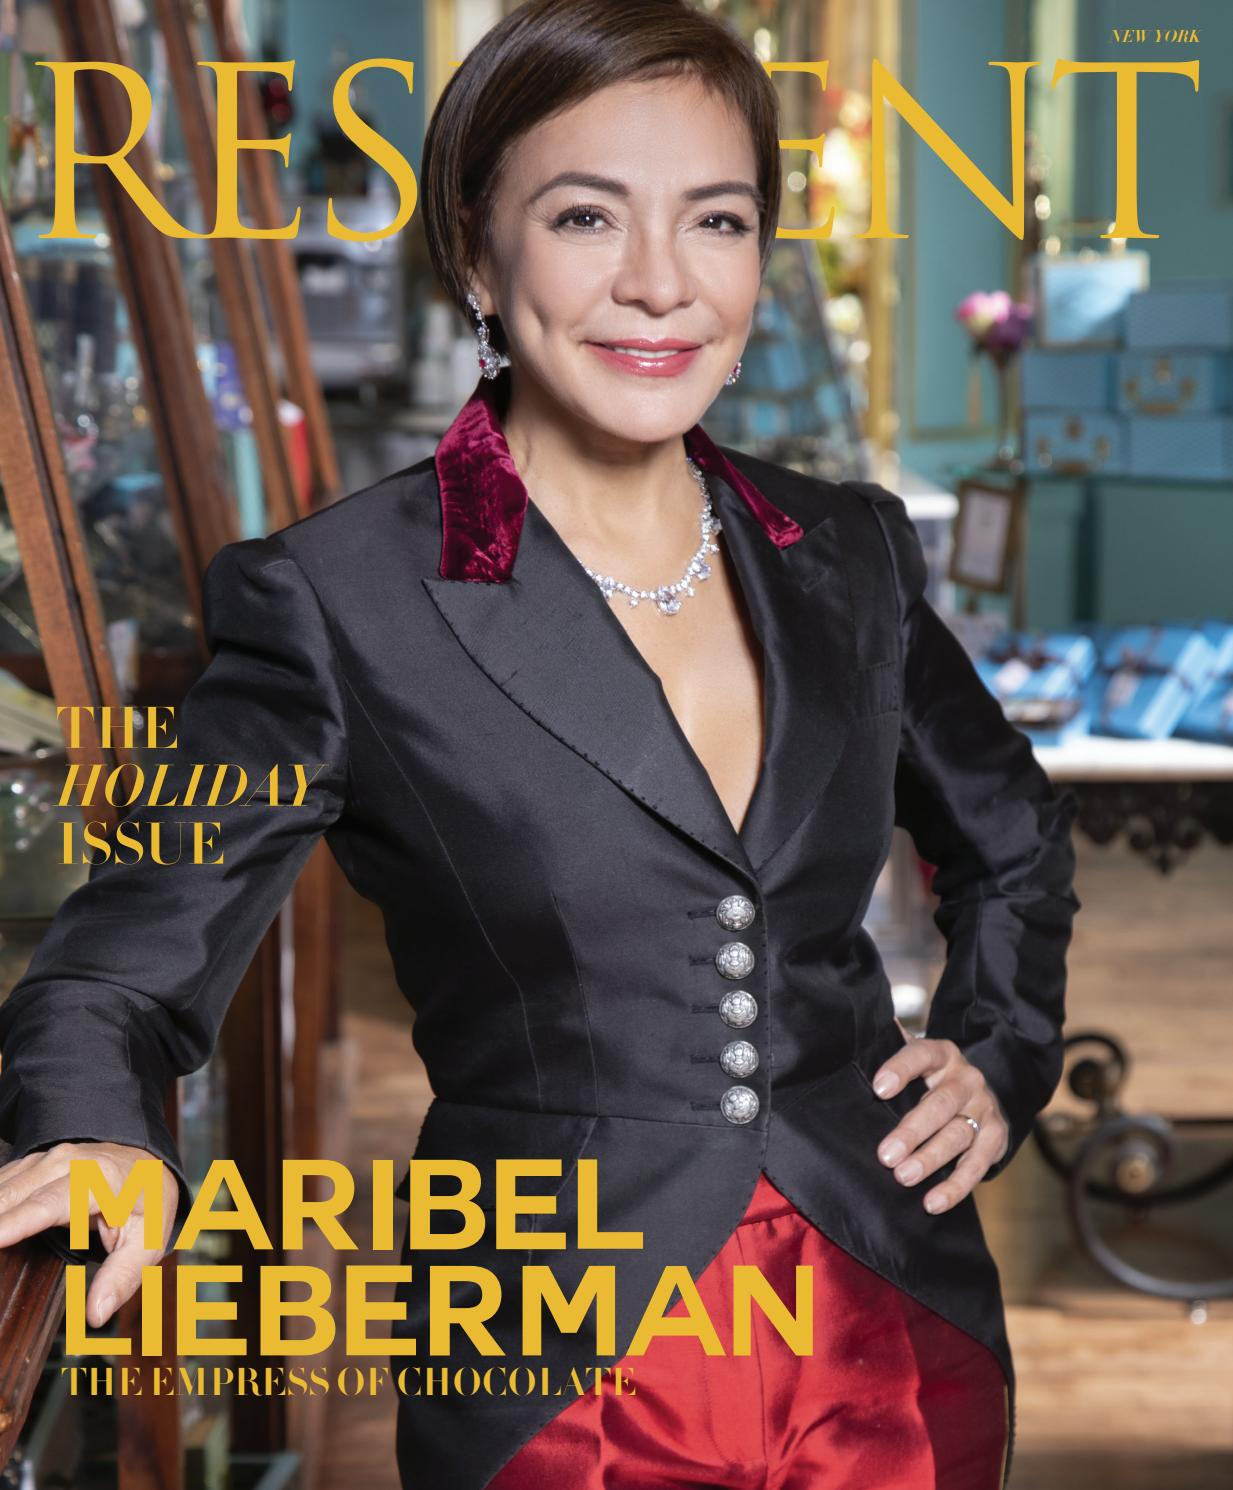 a0e975d78 Resident Magazine NY DECEMBER 2018 MARIBEL by Resident Magazine - issuu